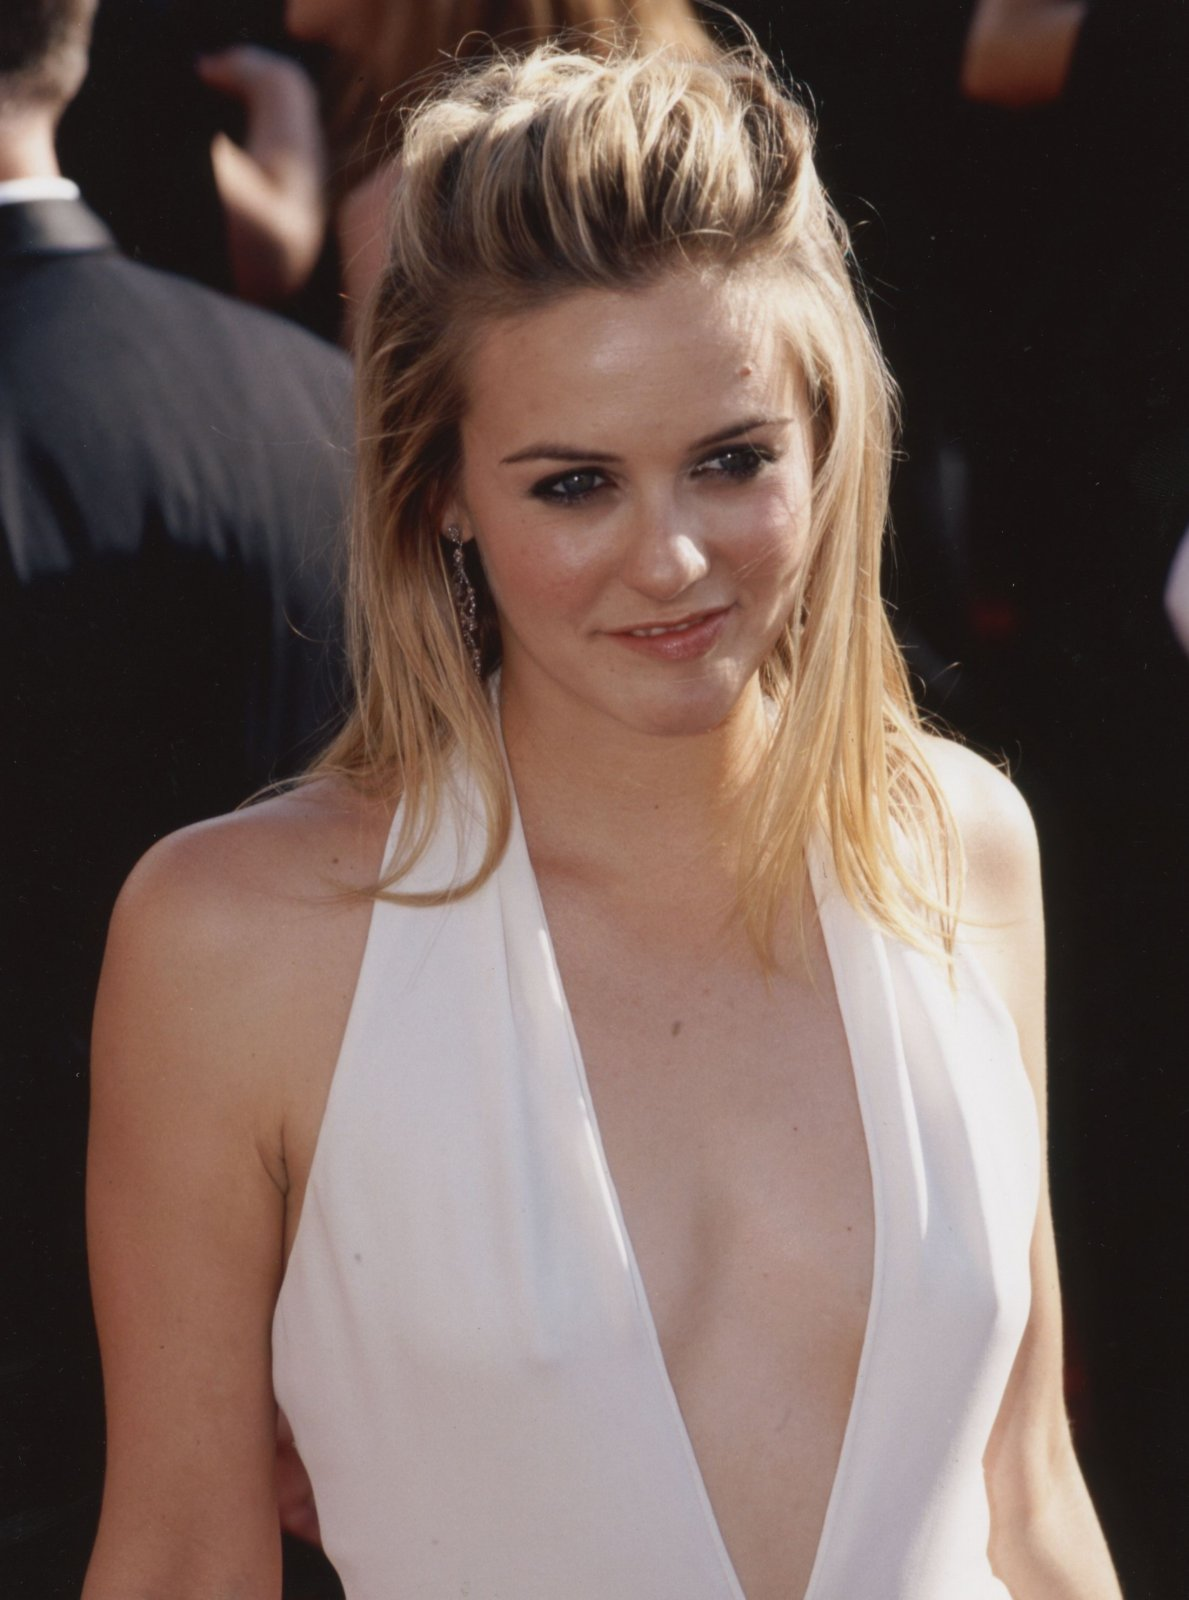 Alicia Silverstone's Pictures Gallery